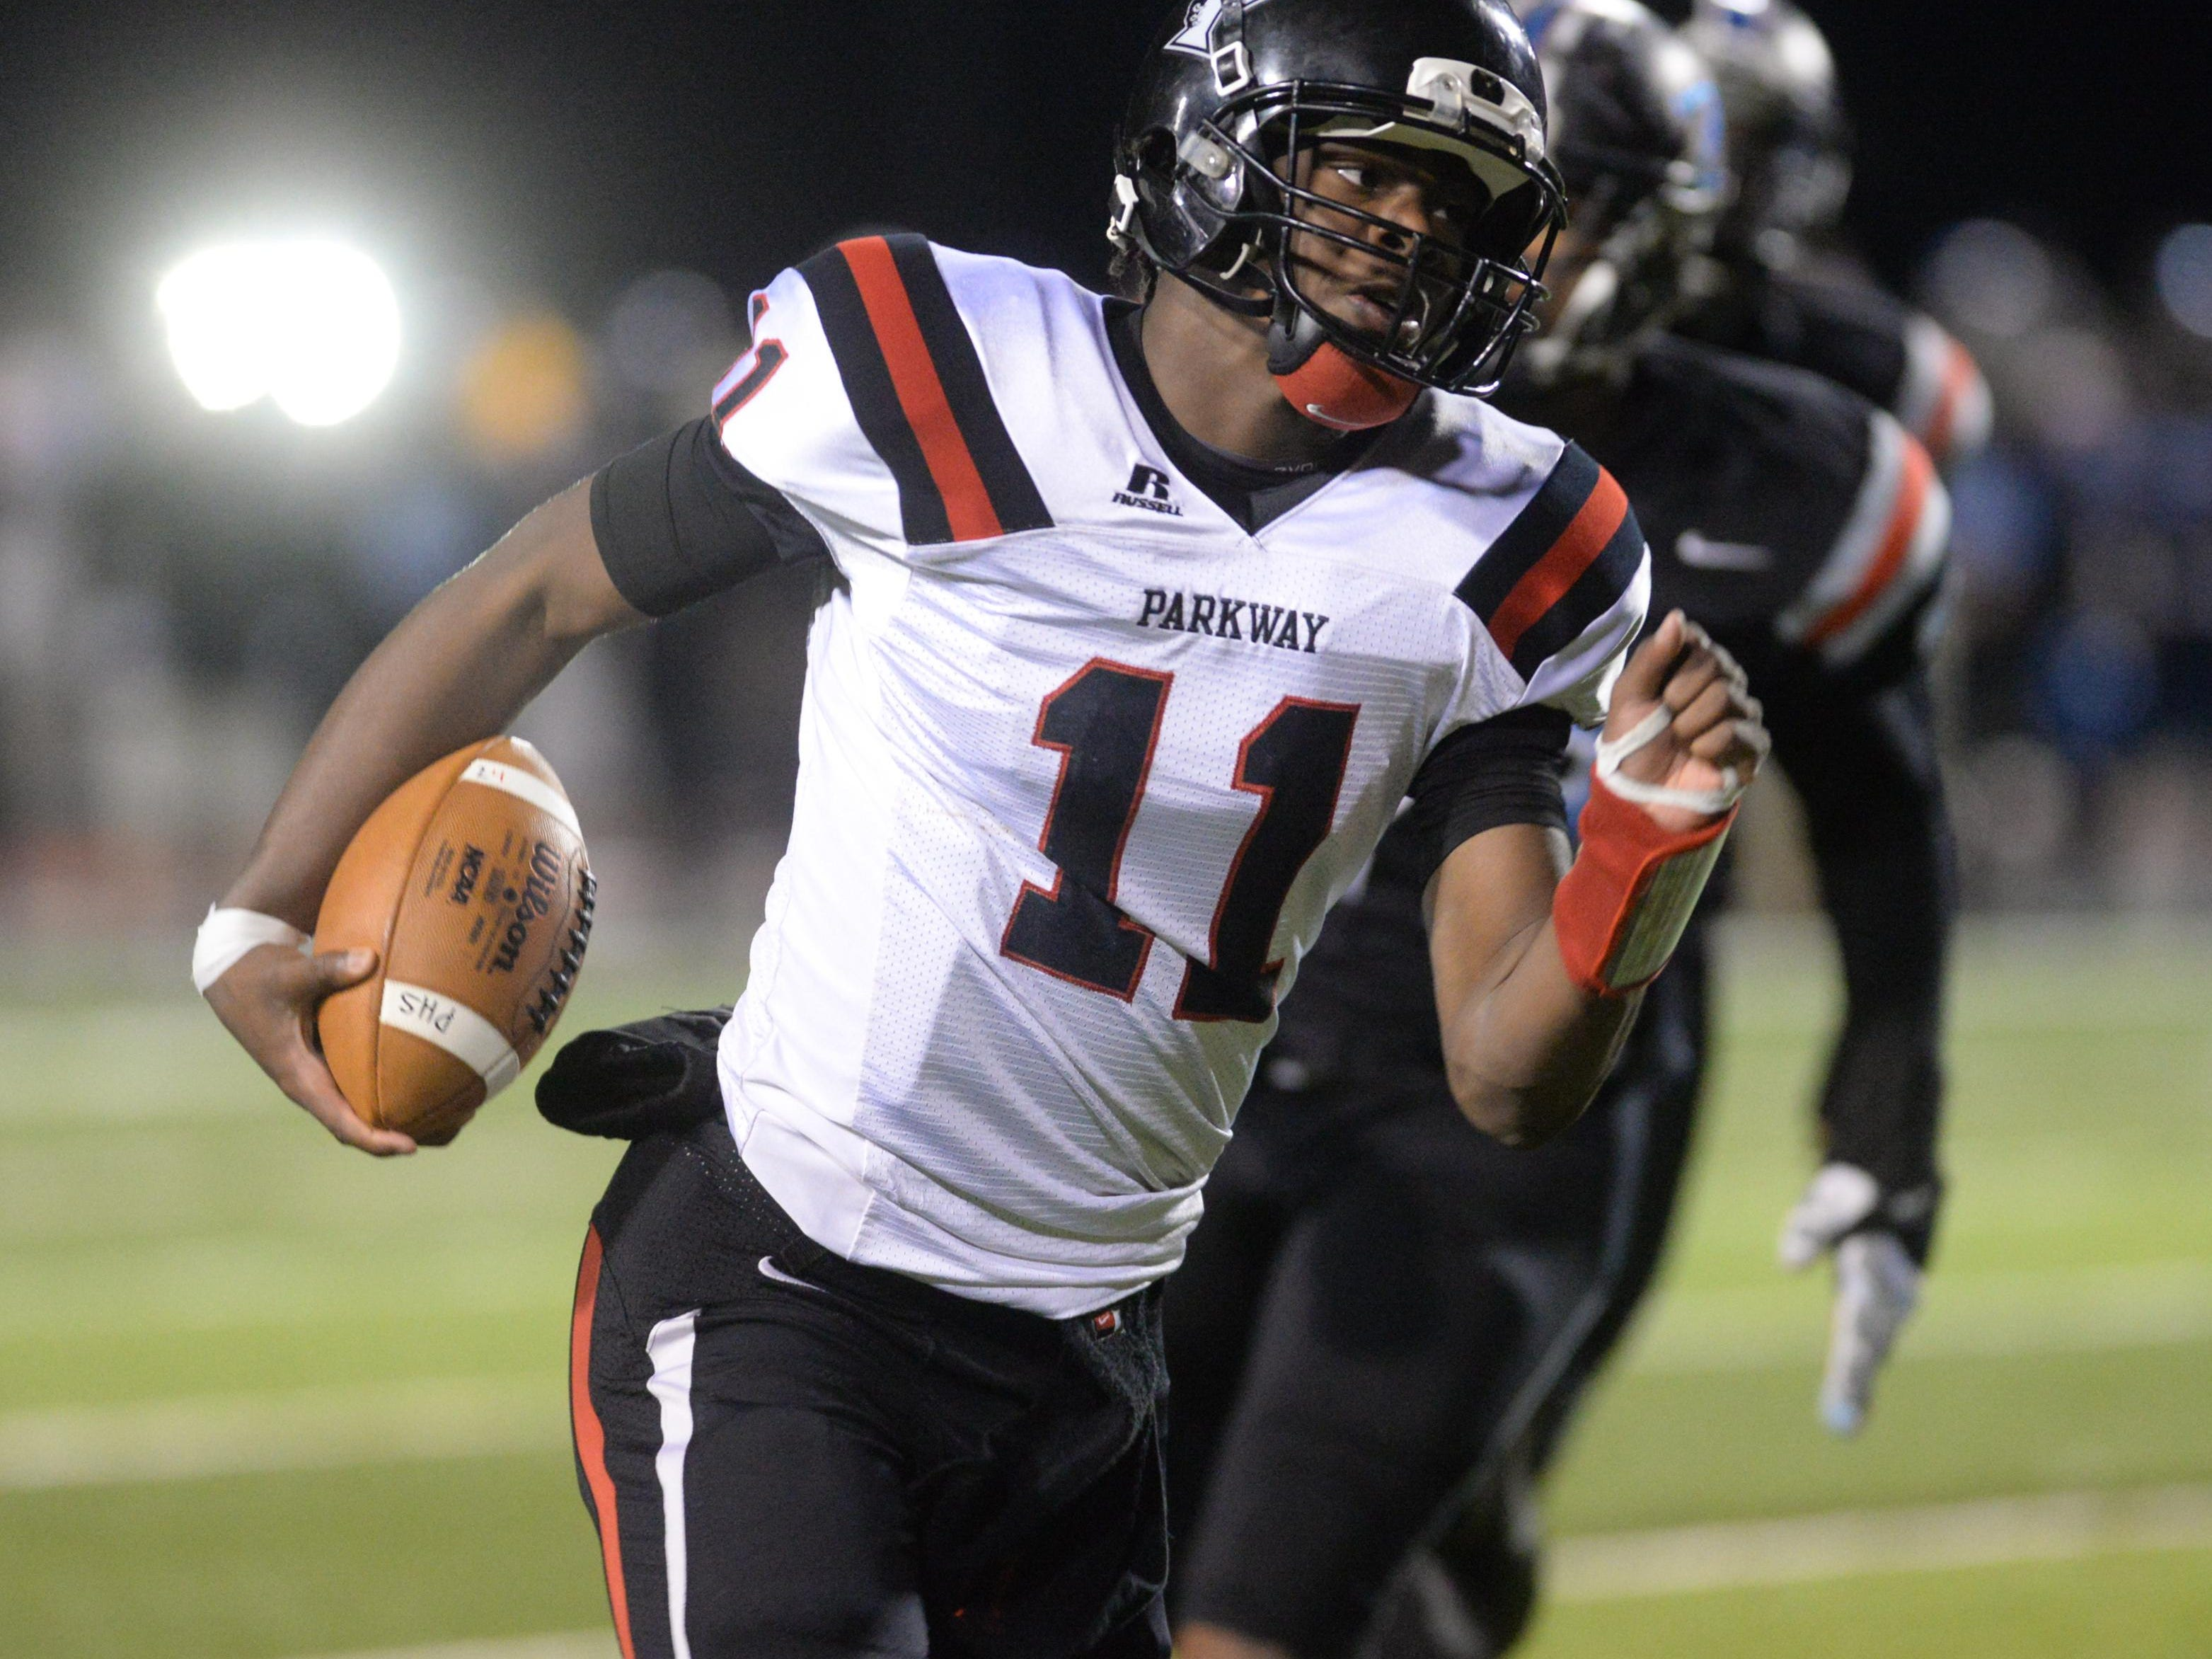 Parkway senior QB Keondre Wudtee runs for a first down against Zachary in the class 5A semifinals.